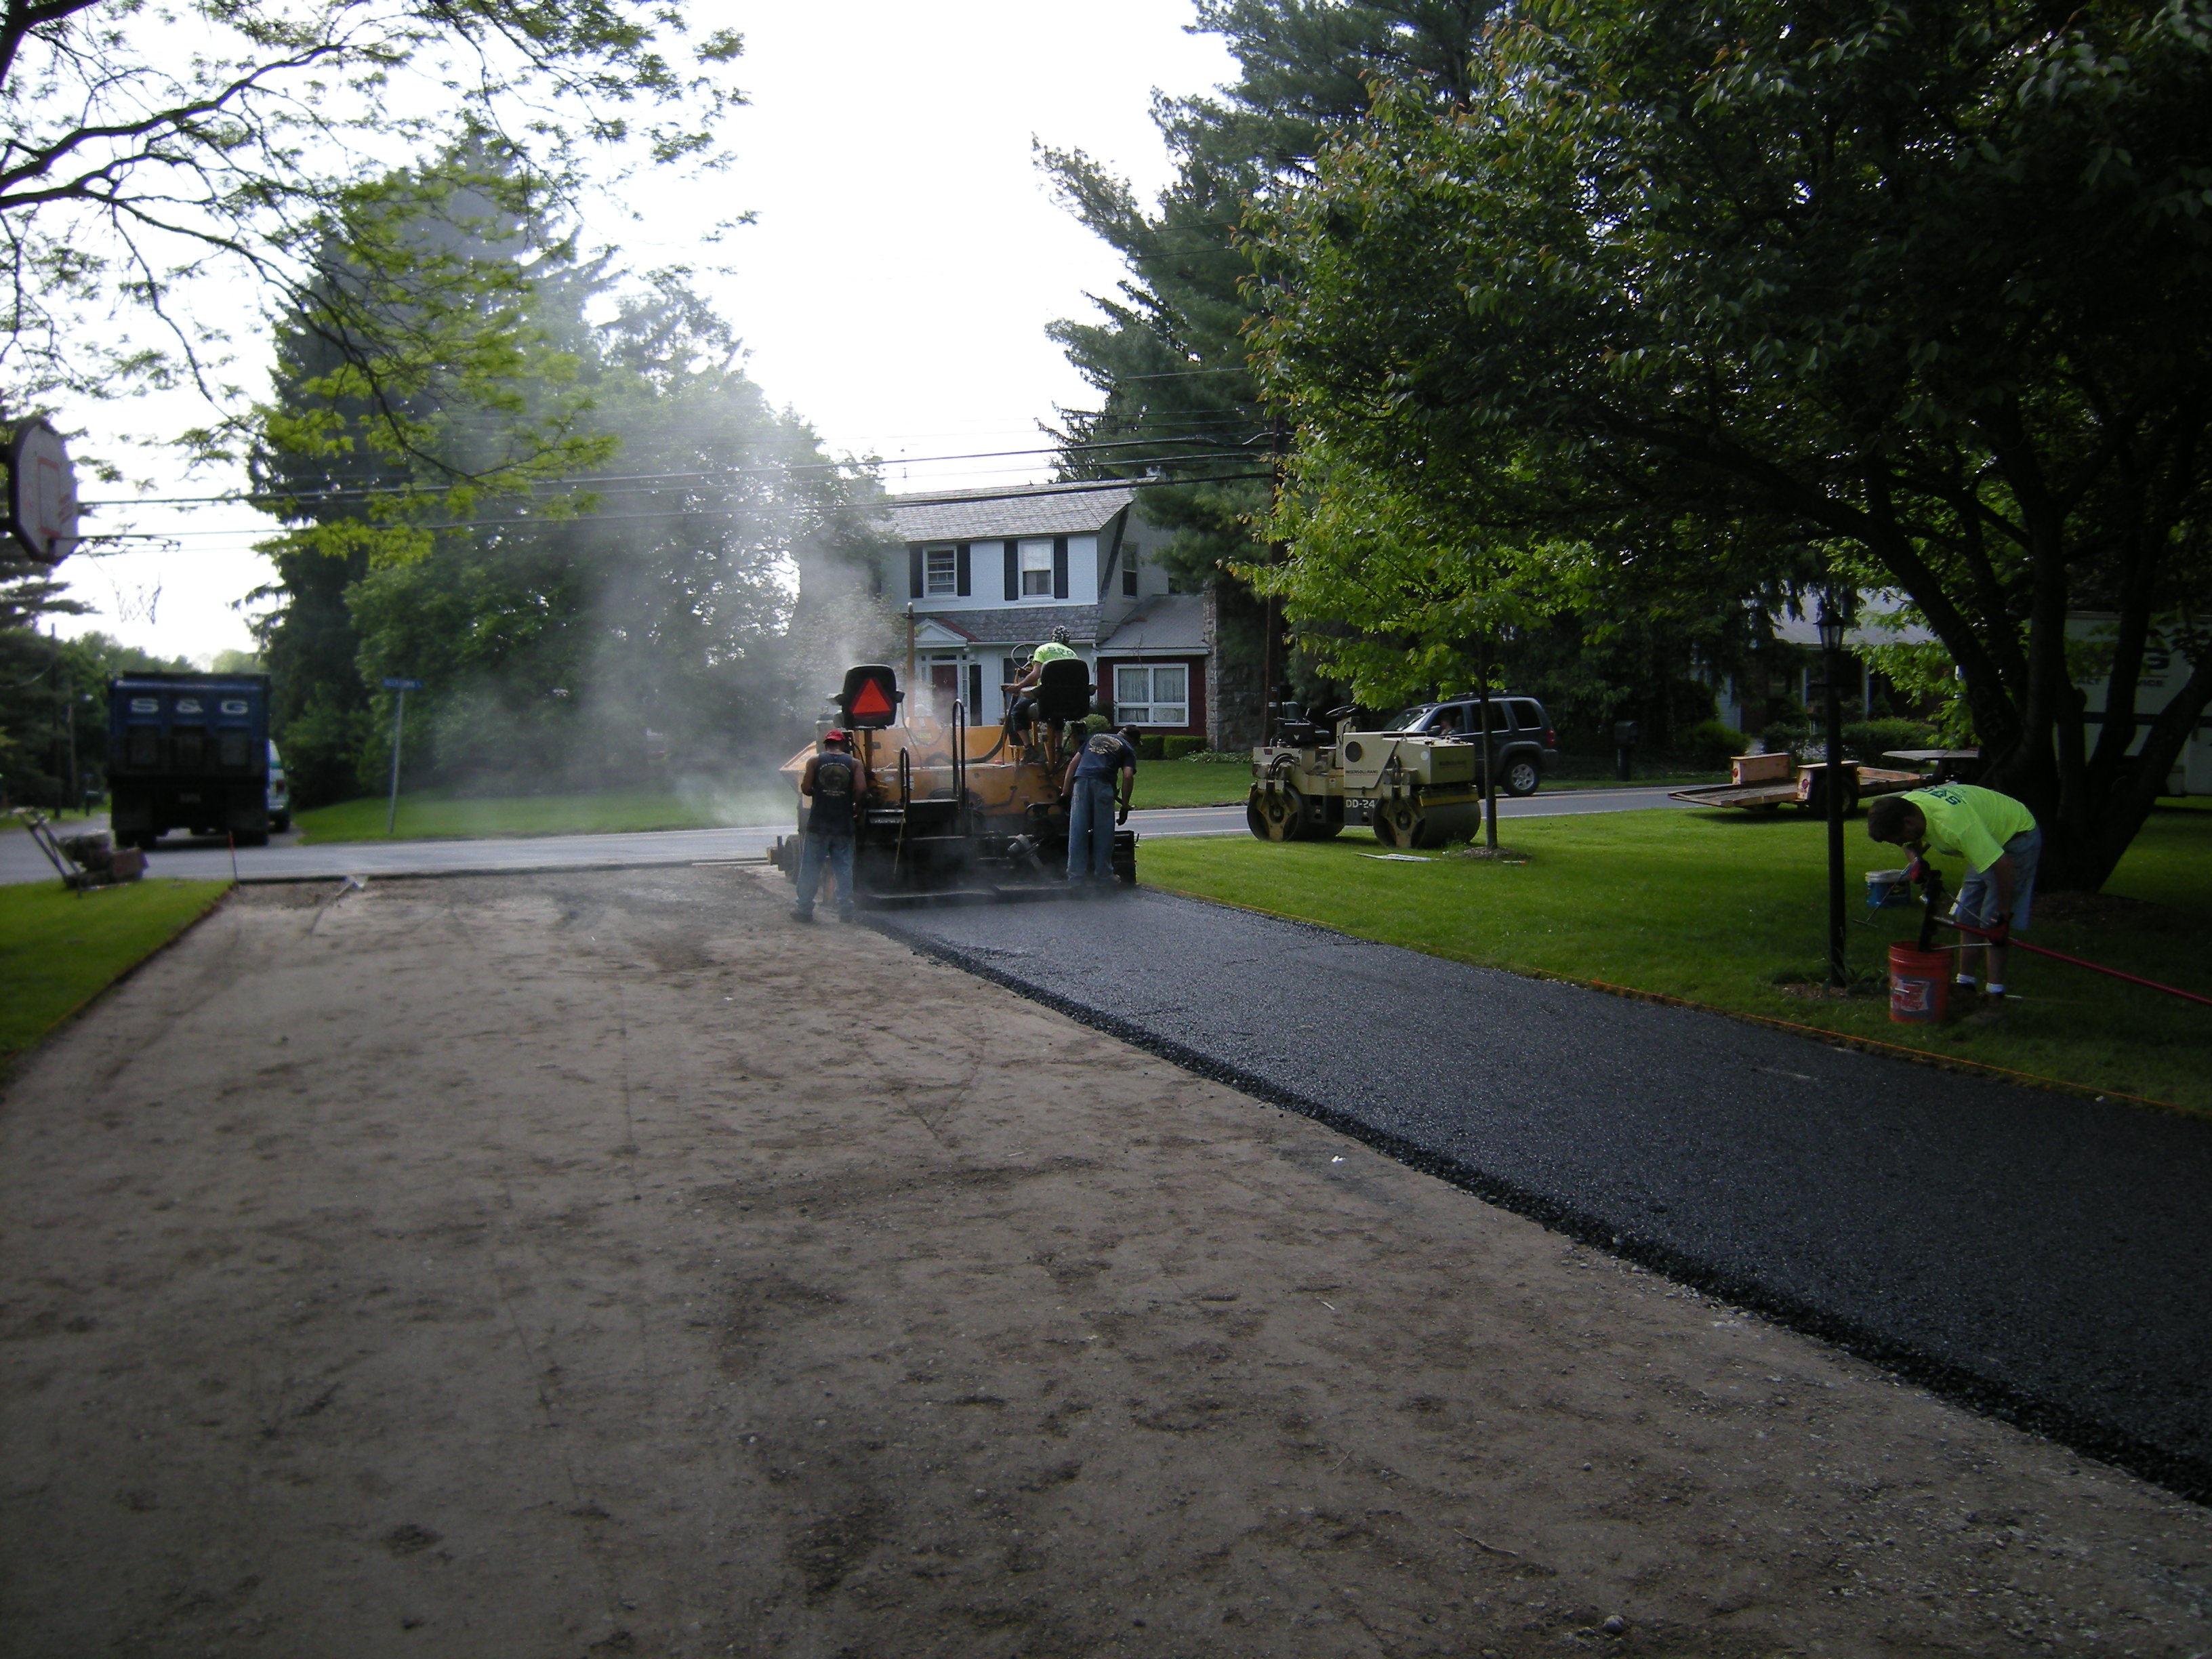 Crew using paving equipment to lay new pavement